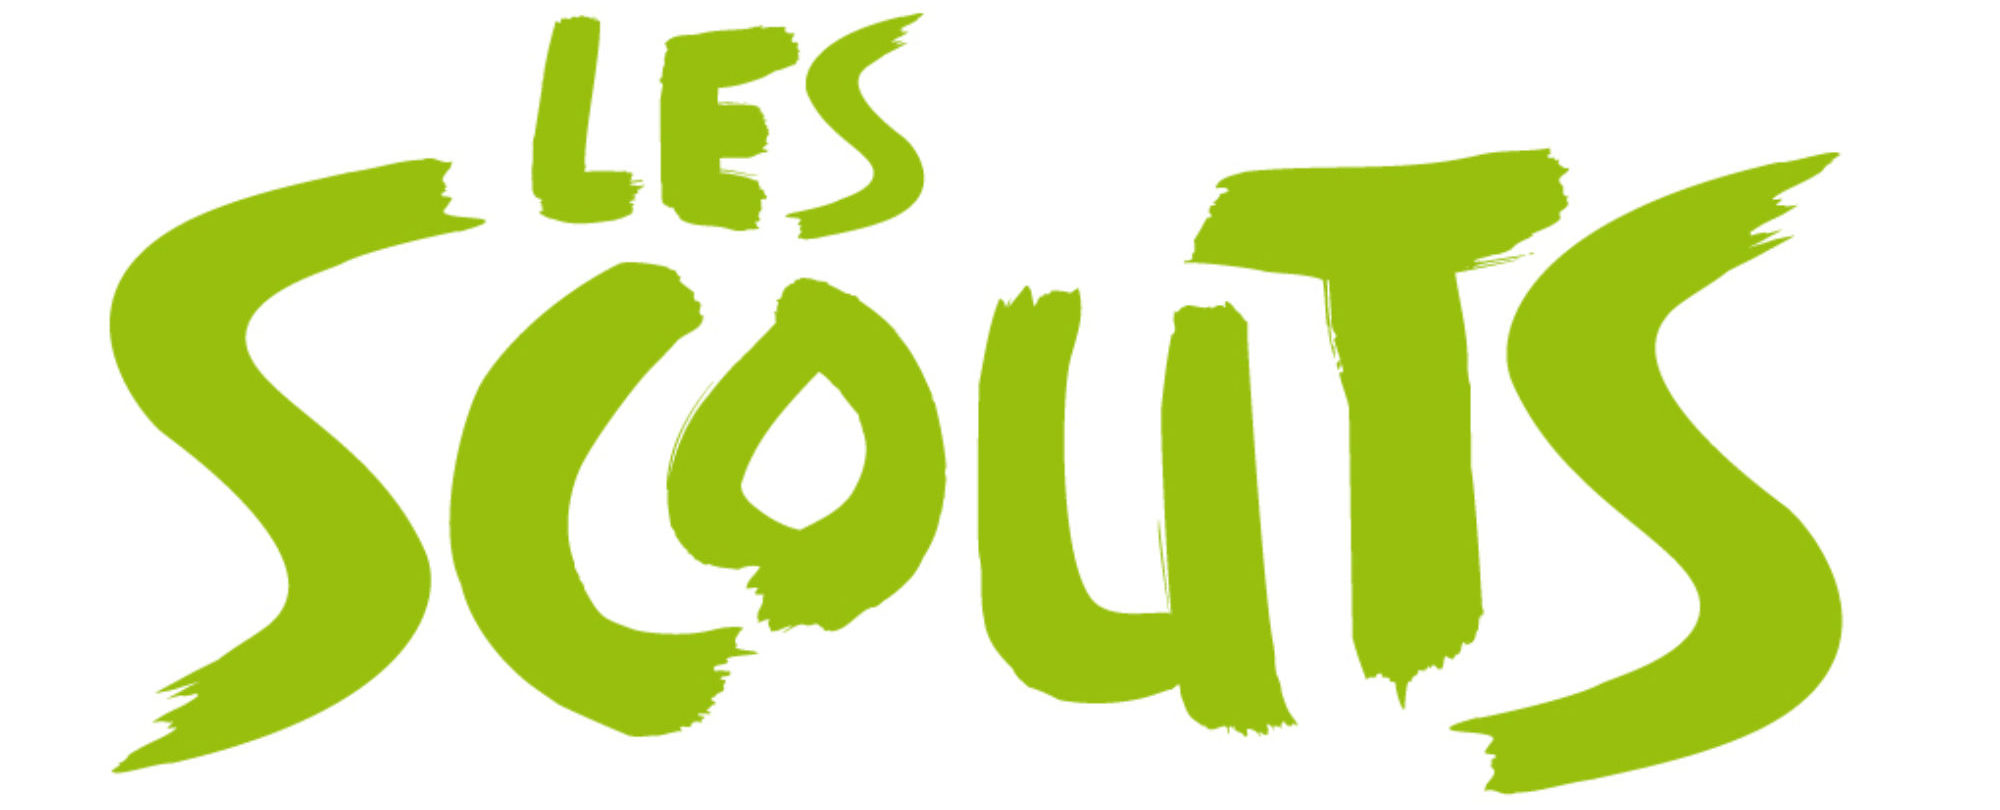 cropped-cropped-Les-Scouts_horizontal_vert.jpg.jpg